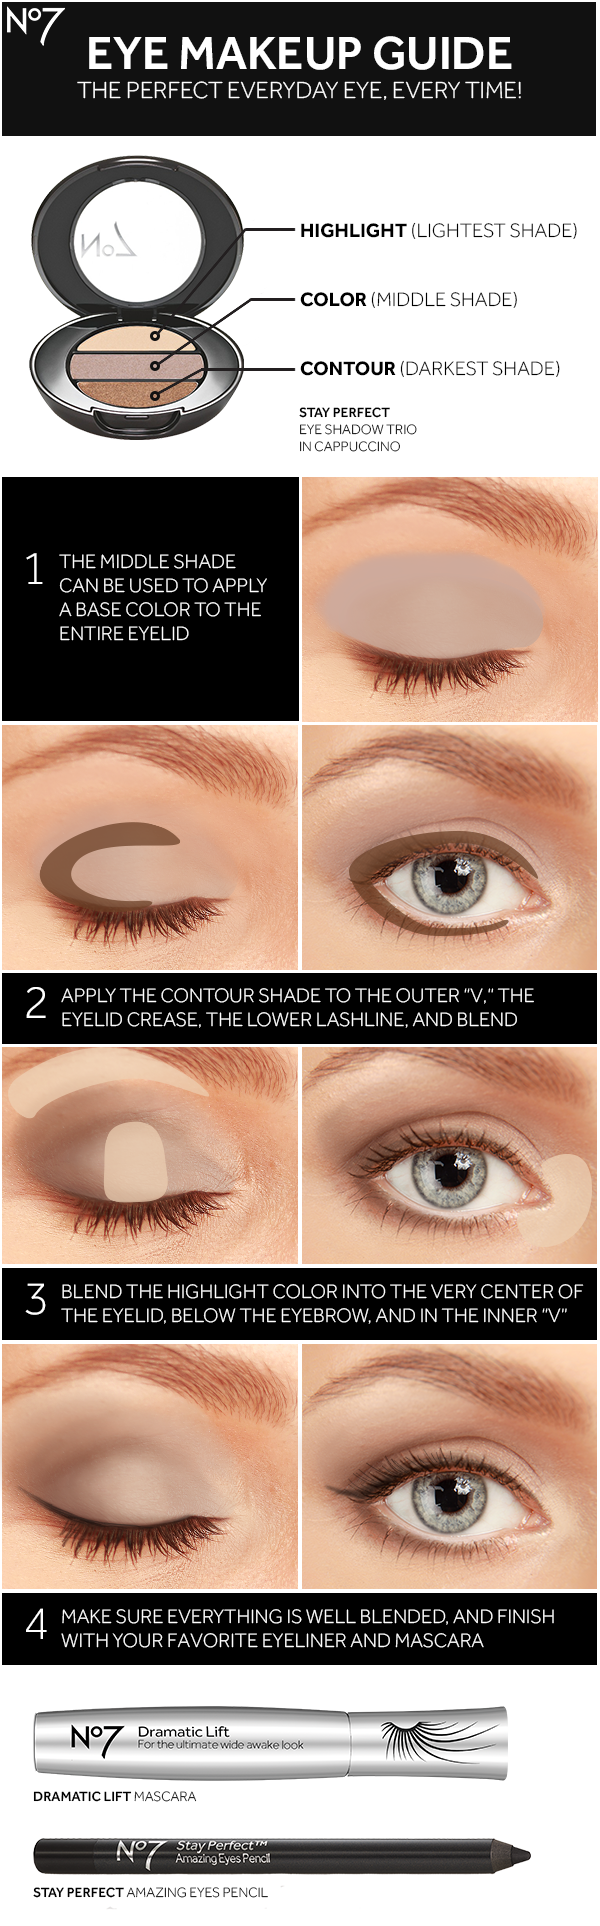 Sharpen your eye makeup skills with No7 eye shadow, mascara, eyeliner and this…